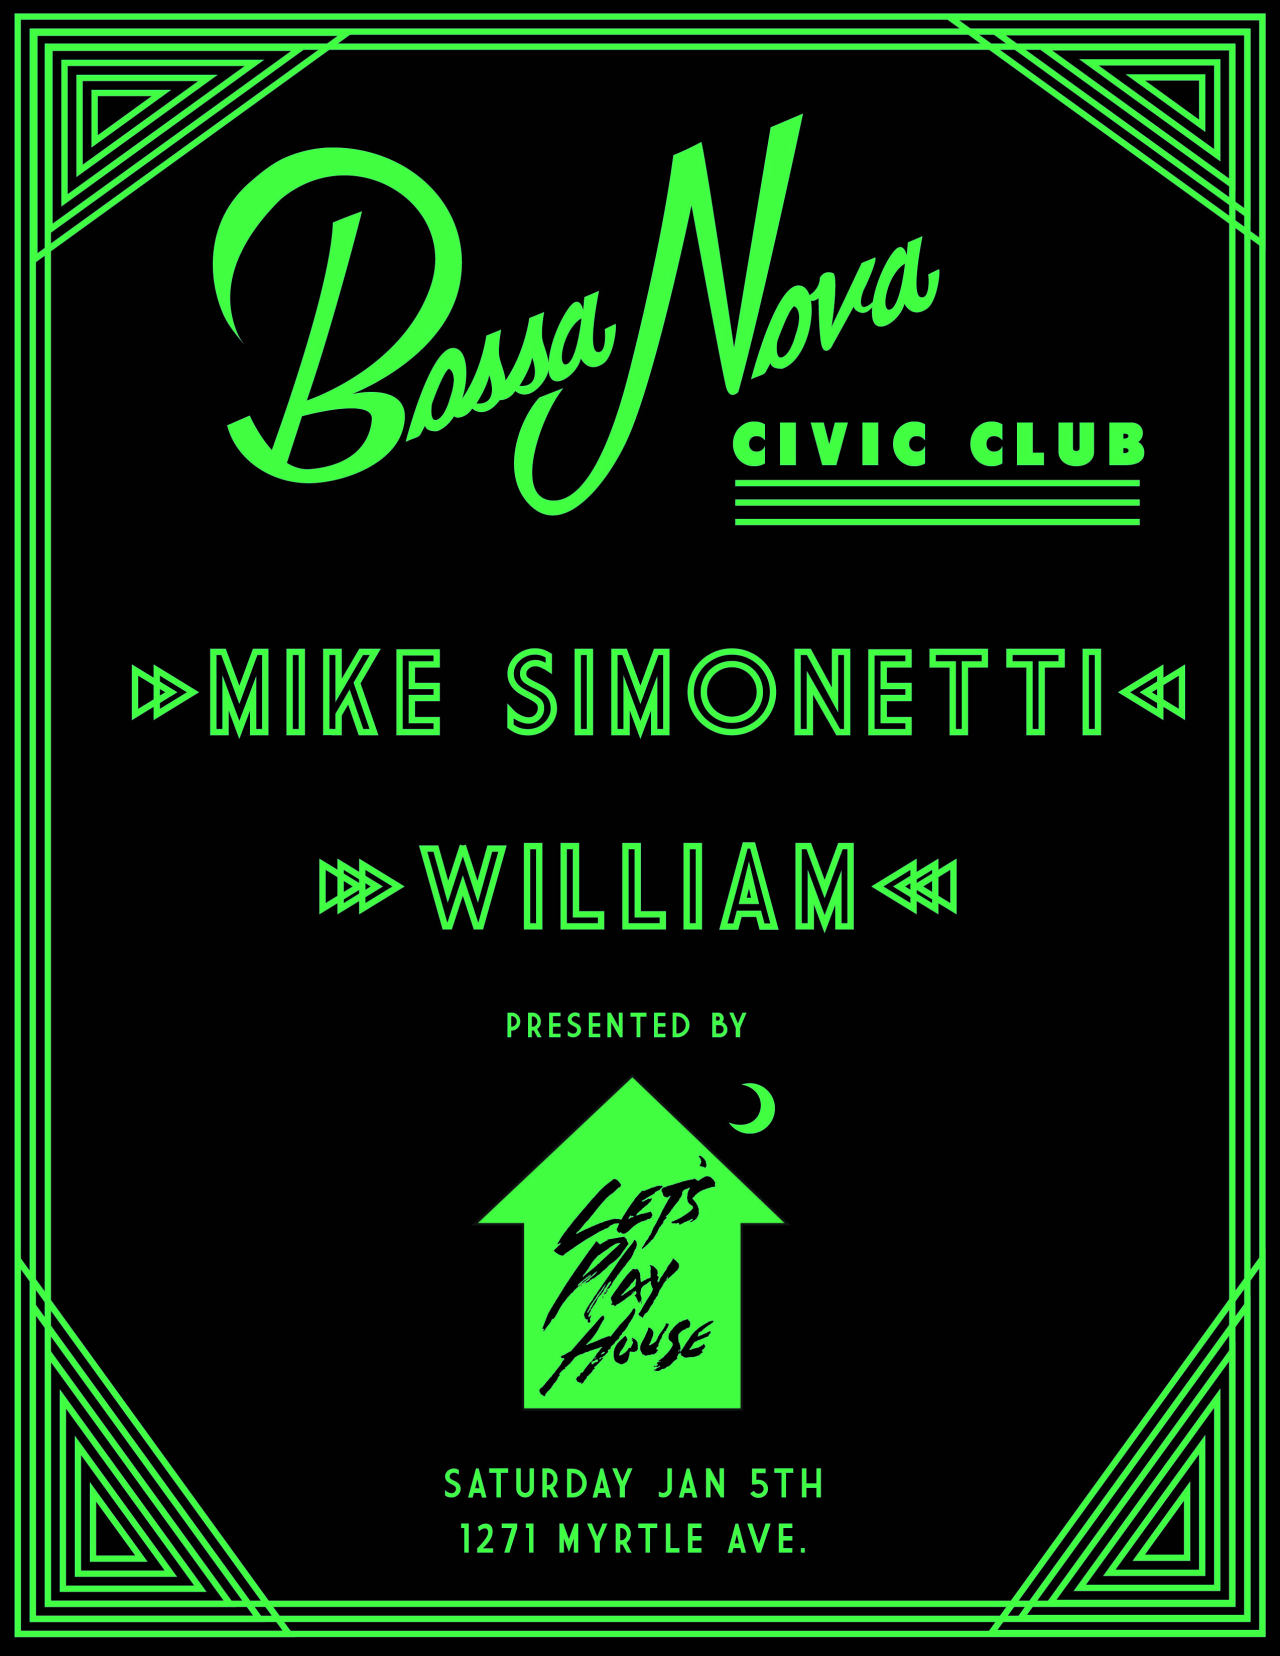 Tomorrow night, we're back at Bossa Nova Civic Club! Joining us this time is the esteemed founder and owner of Italians Do It Better, Mike Simonetti, as well as our good friend, William, of Fac Off fame. A very special guest will be spinning records, too, so come on out and do it up right with us!